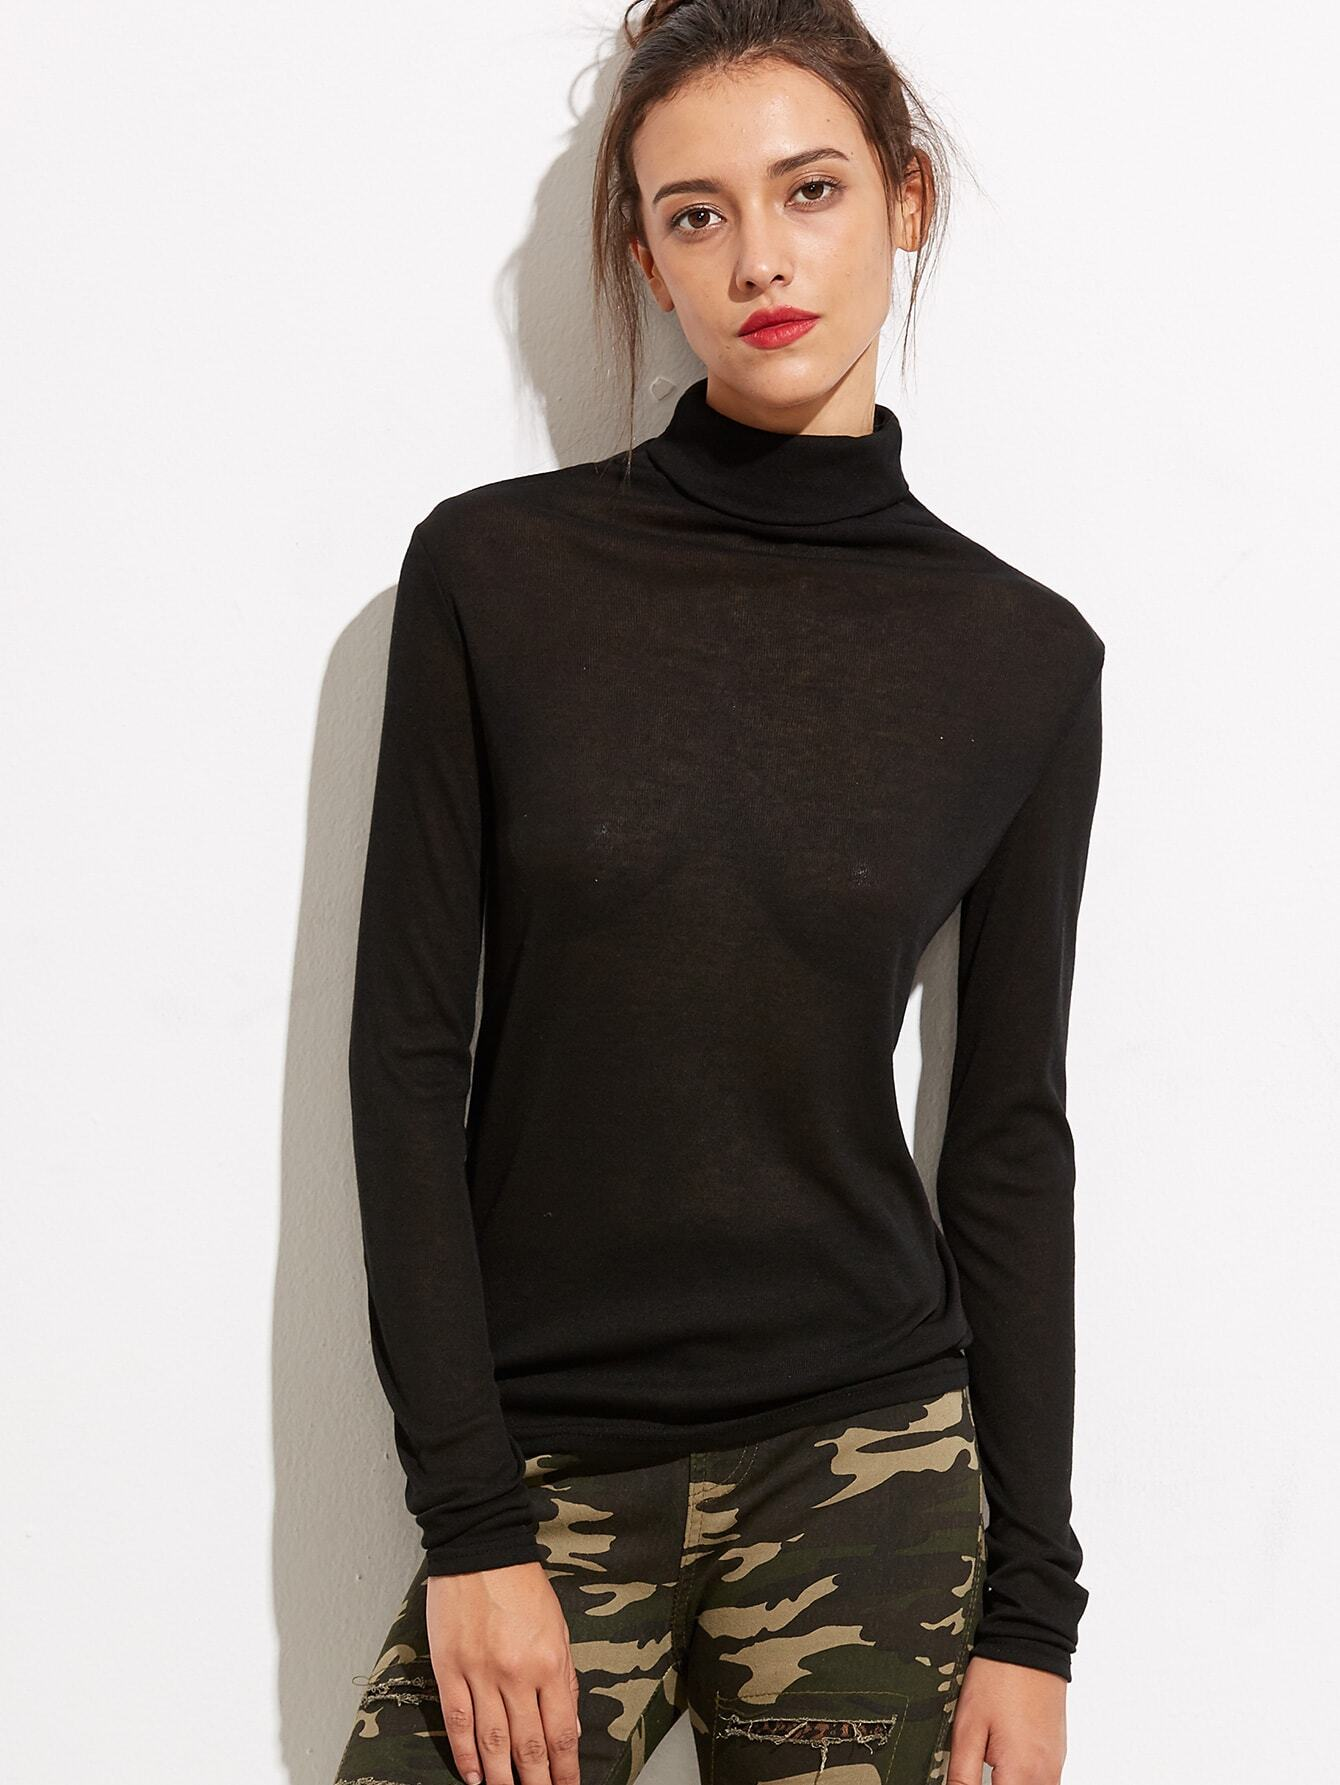 Black turtleneck long sleeve t shirt for Turtleneck under t shirt